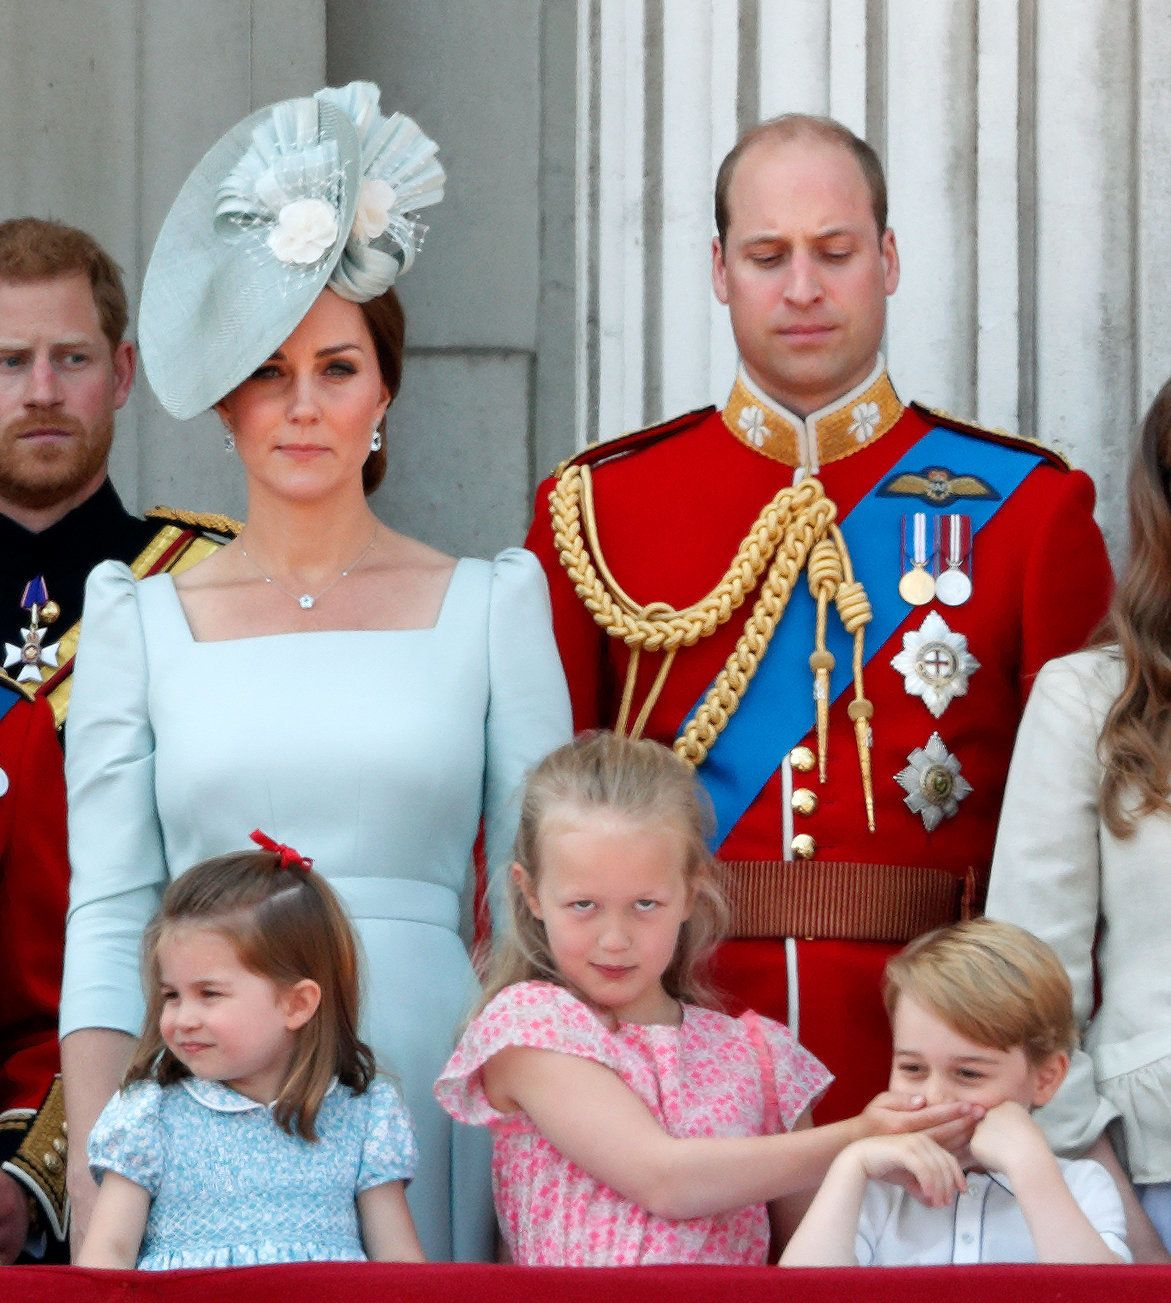 Prince William gives his son a disapproving look.&nbsp